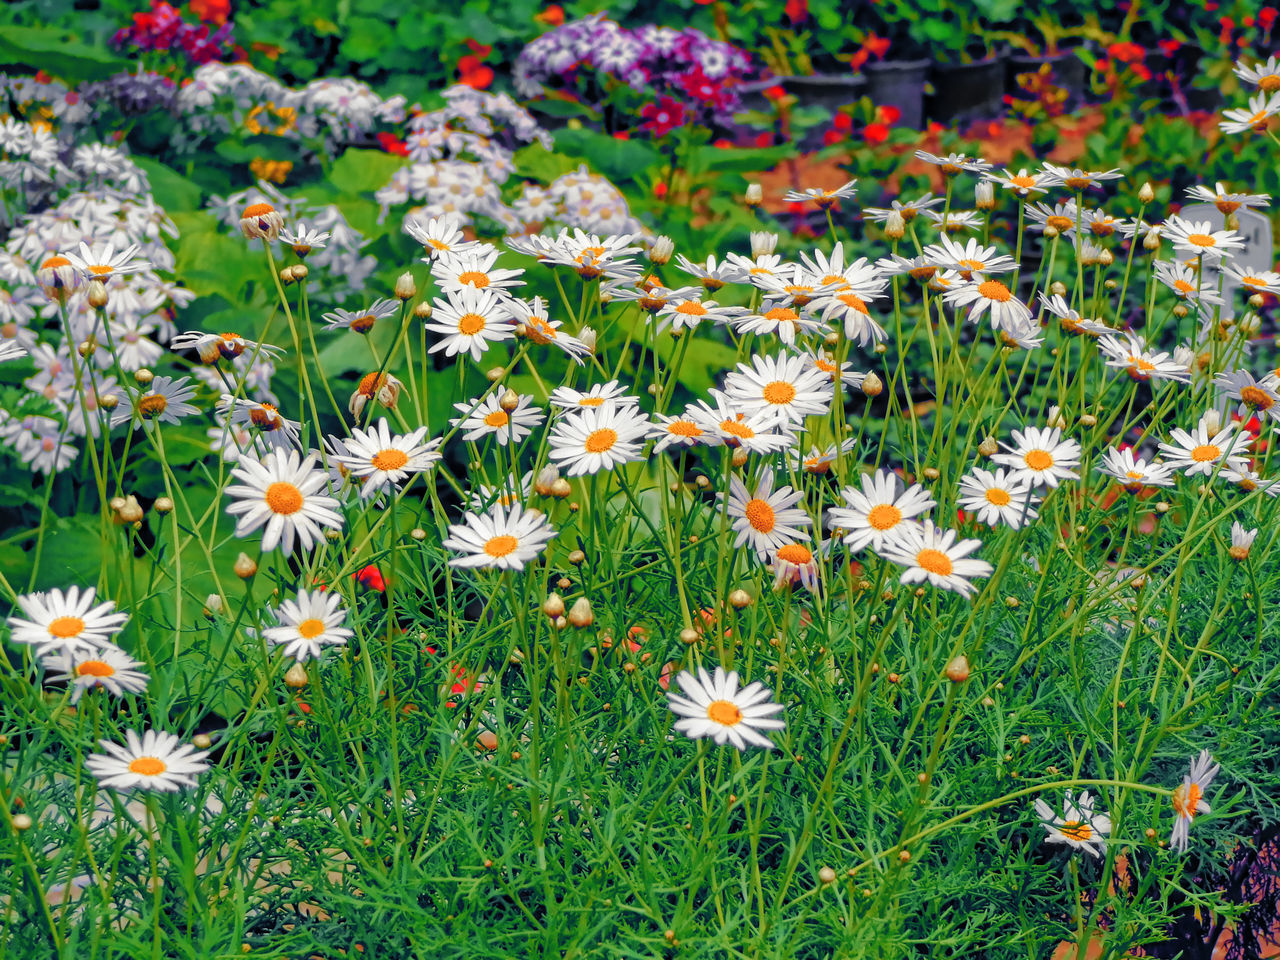 flower, growth, nature, petal, plant, beauty in nature, freshness, fragility, blooming, flower head, field, high angle view, outdoors, grass, green color, day, no people, park - man made space, springtime, close-up, zinnia